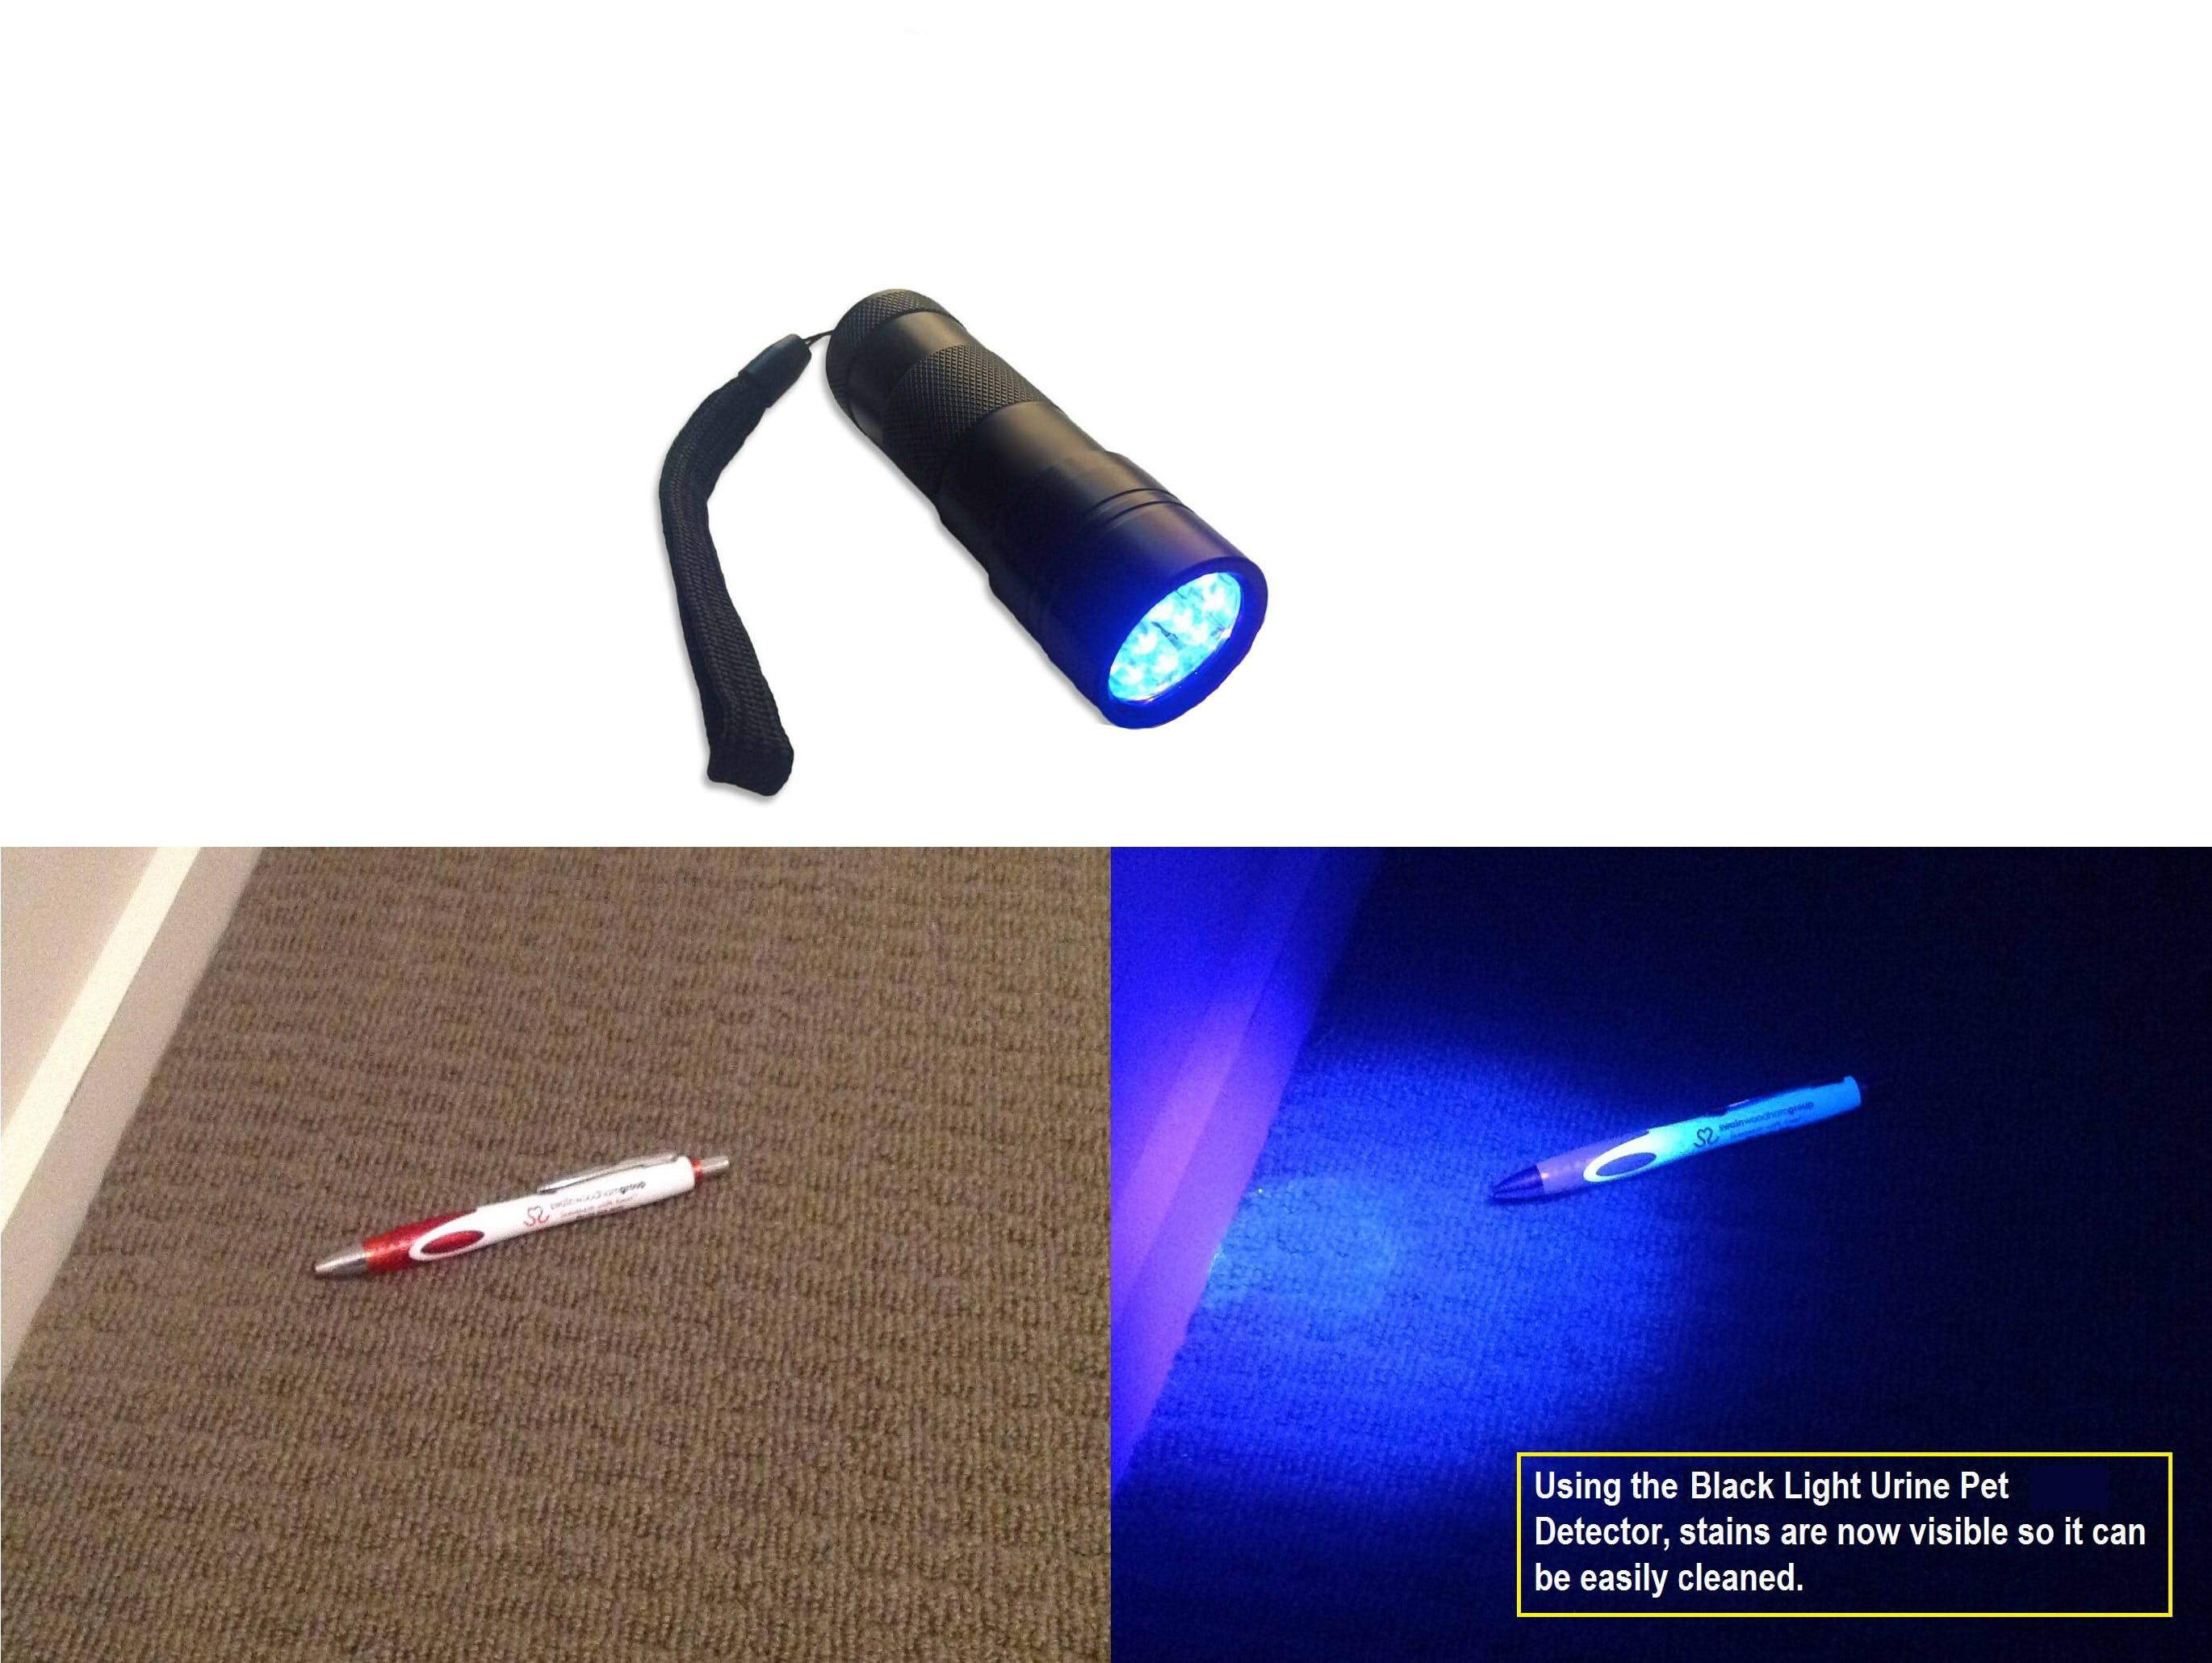 Uv Stain Detective Helps You Find Those Annoying Smelly Cat Dog Or Rodent Urine Stains It Is A Pow Dog Beds For Small Dogs Black Light Flashlight Black Light